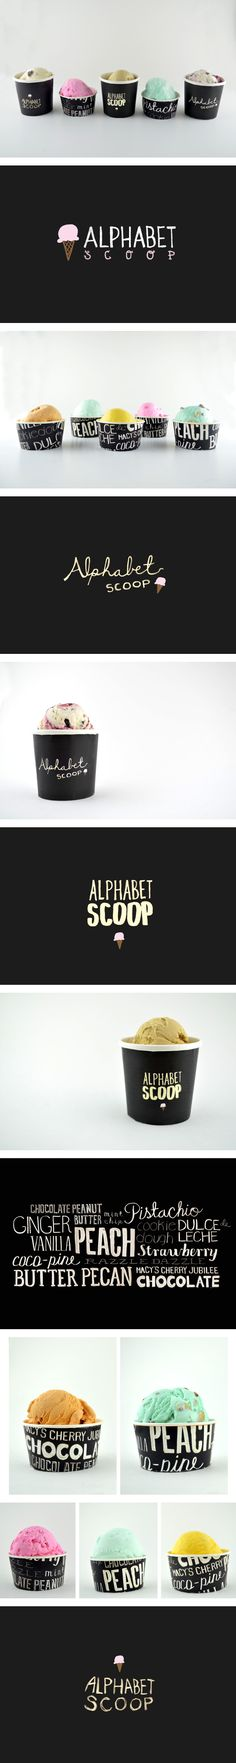 Alphabet Scoop Packaging by Rebecca Lim. I love how the words play off of alphabet soup. Very clever. And I love the idea it's for I've cream! Nice to see how the fonts actually look on the overall product. #icescream